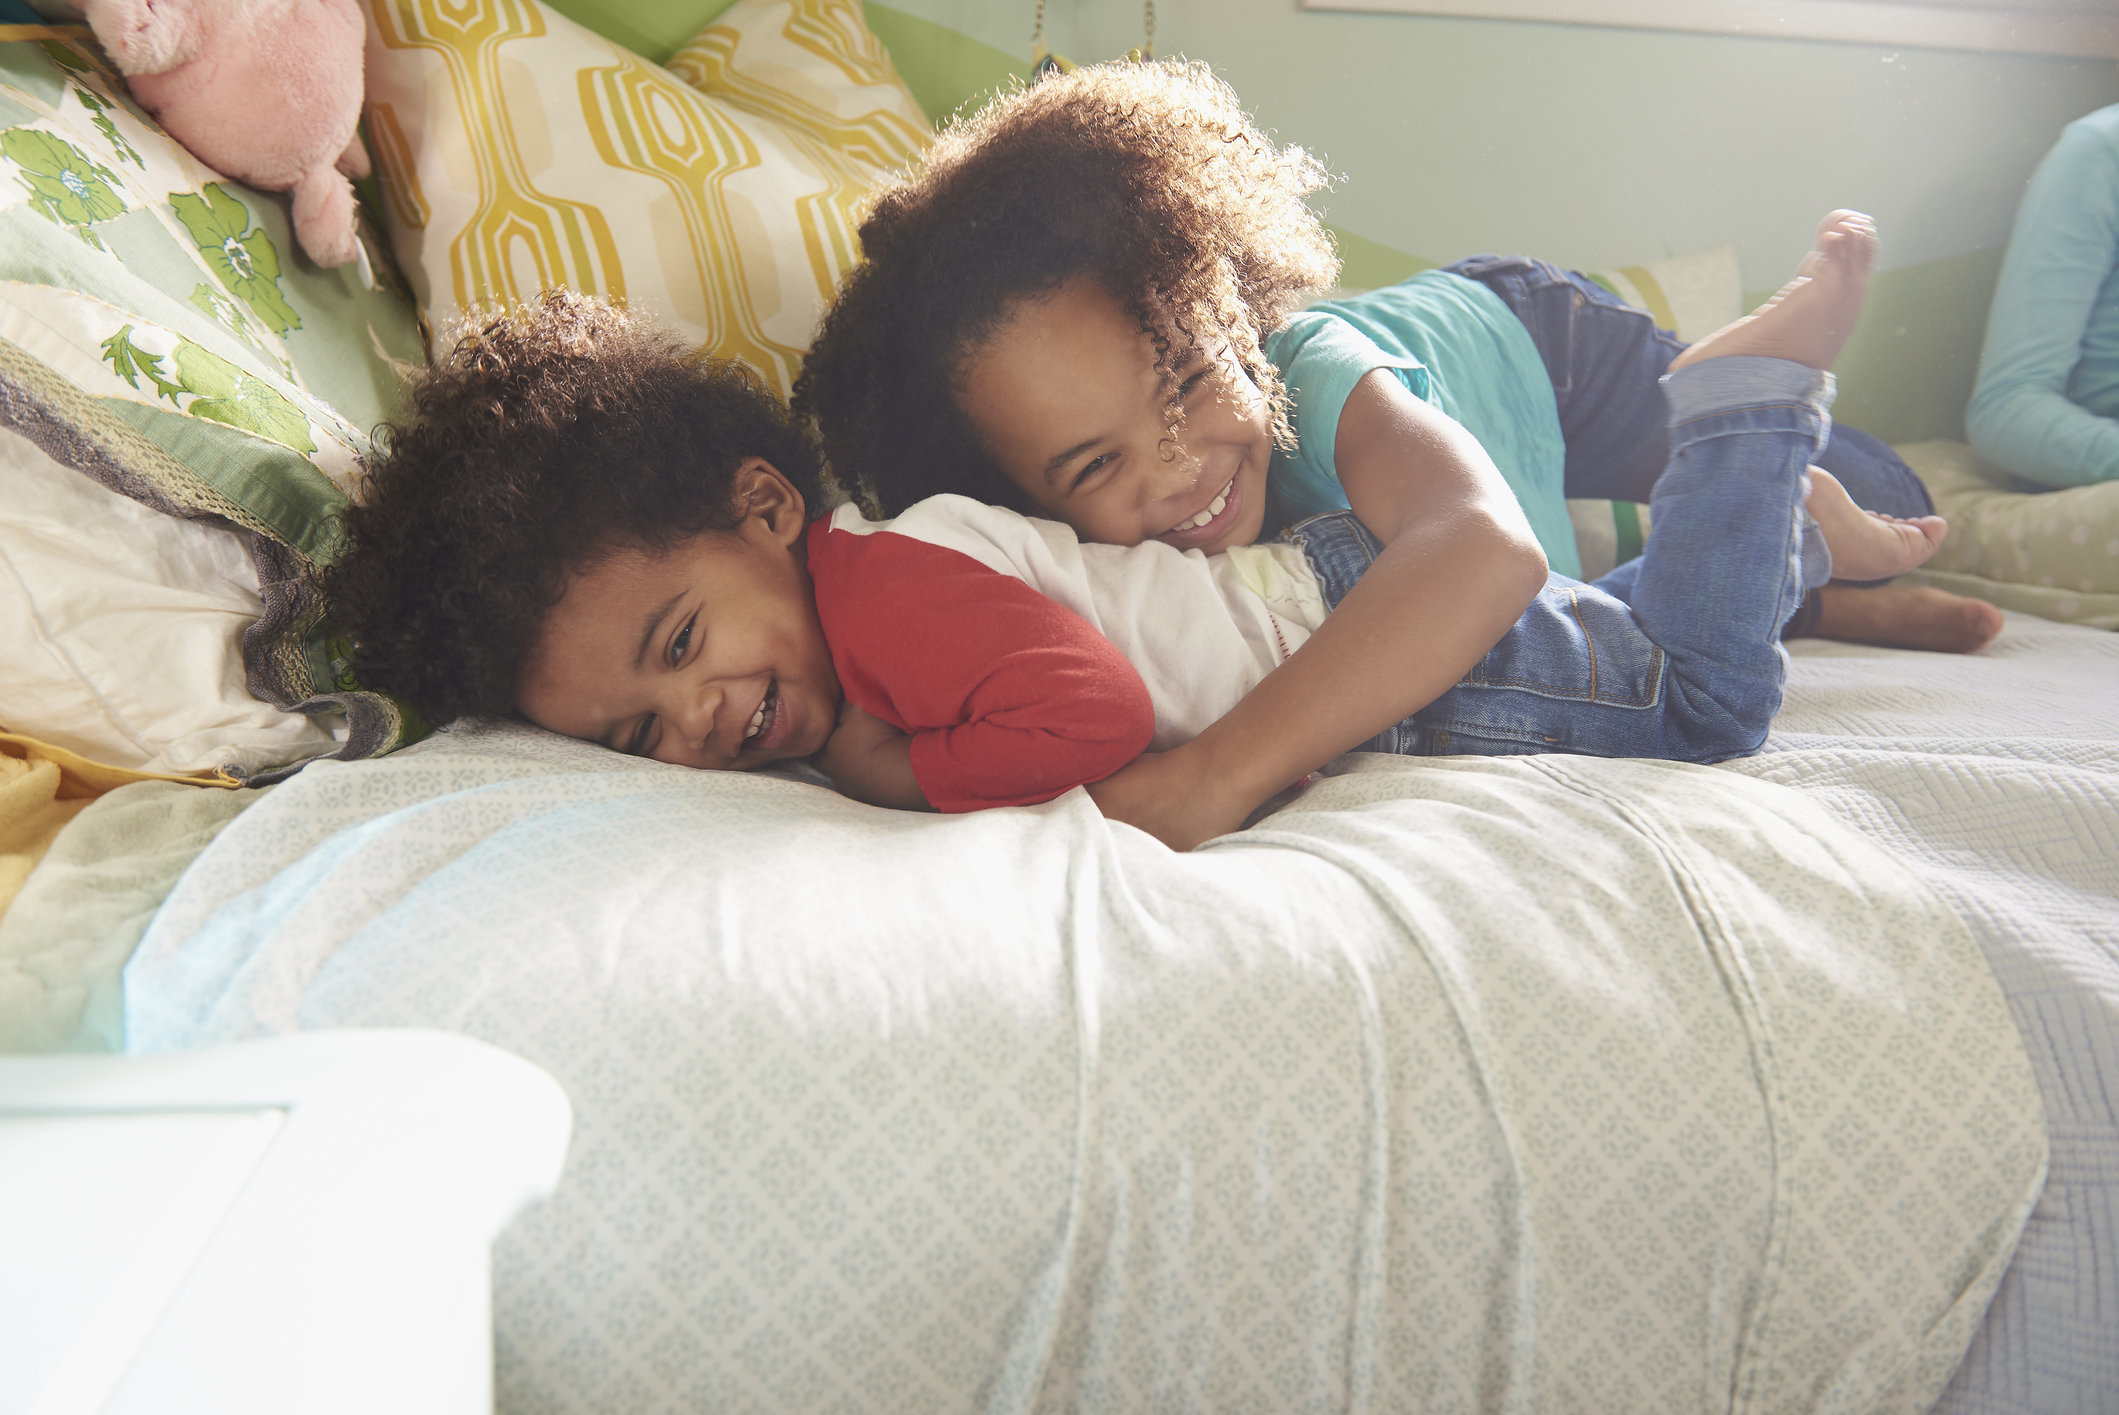 Smiling Black girl tickling baby brother on bed